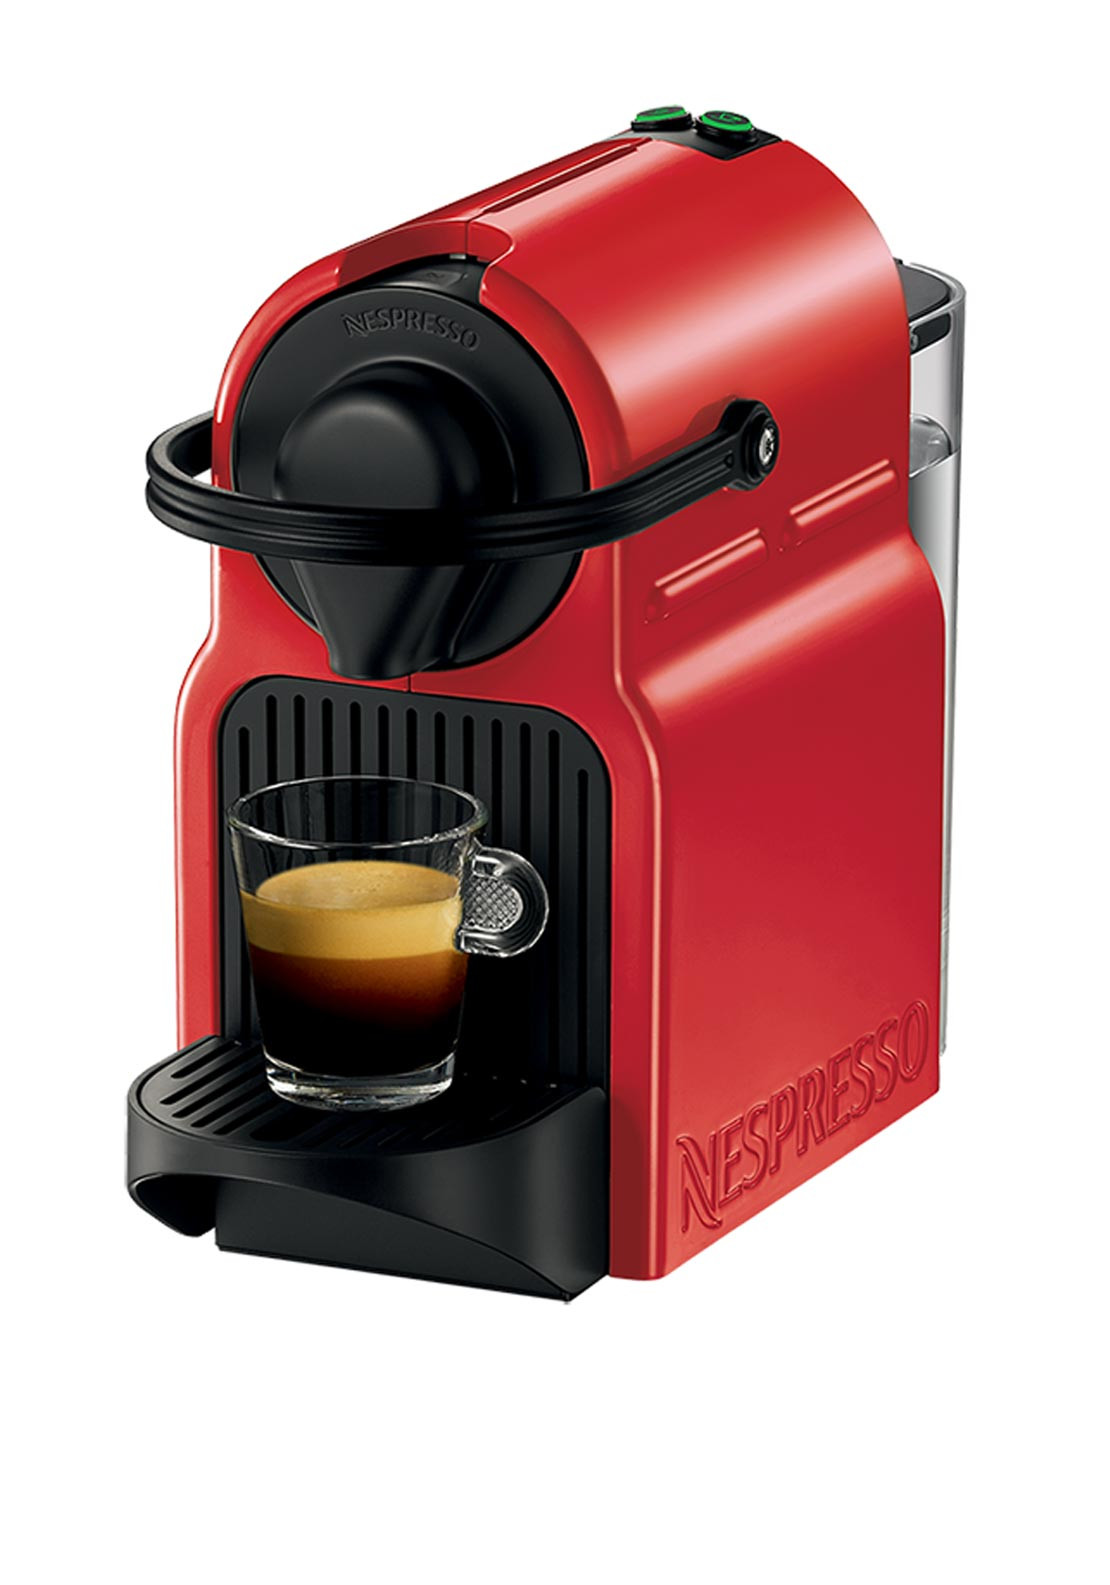 nespresso inissia krups coffee machine red mcelhinneys. Black Bedroom Furniture Sets. Home Design Ideas